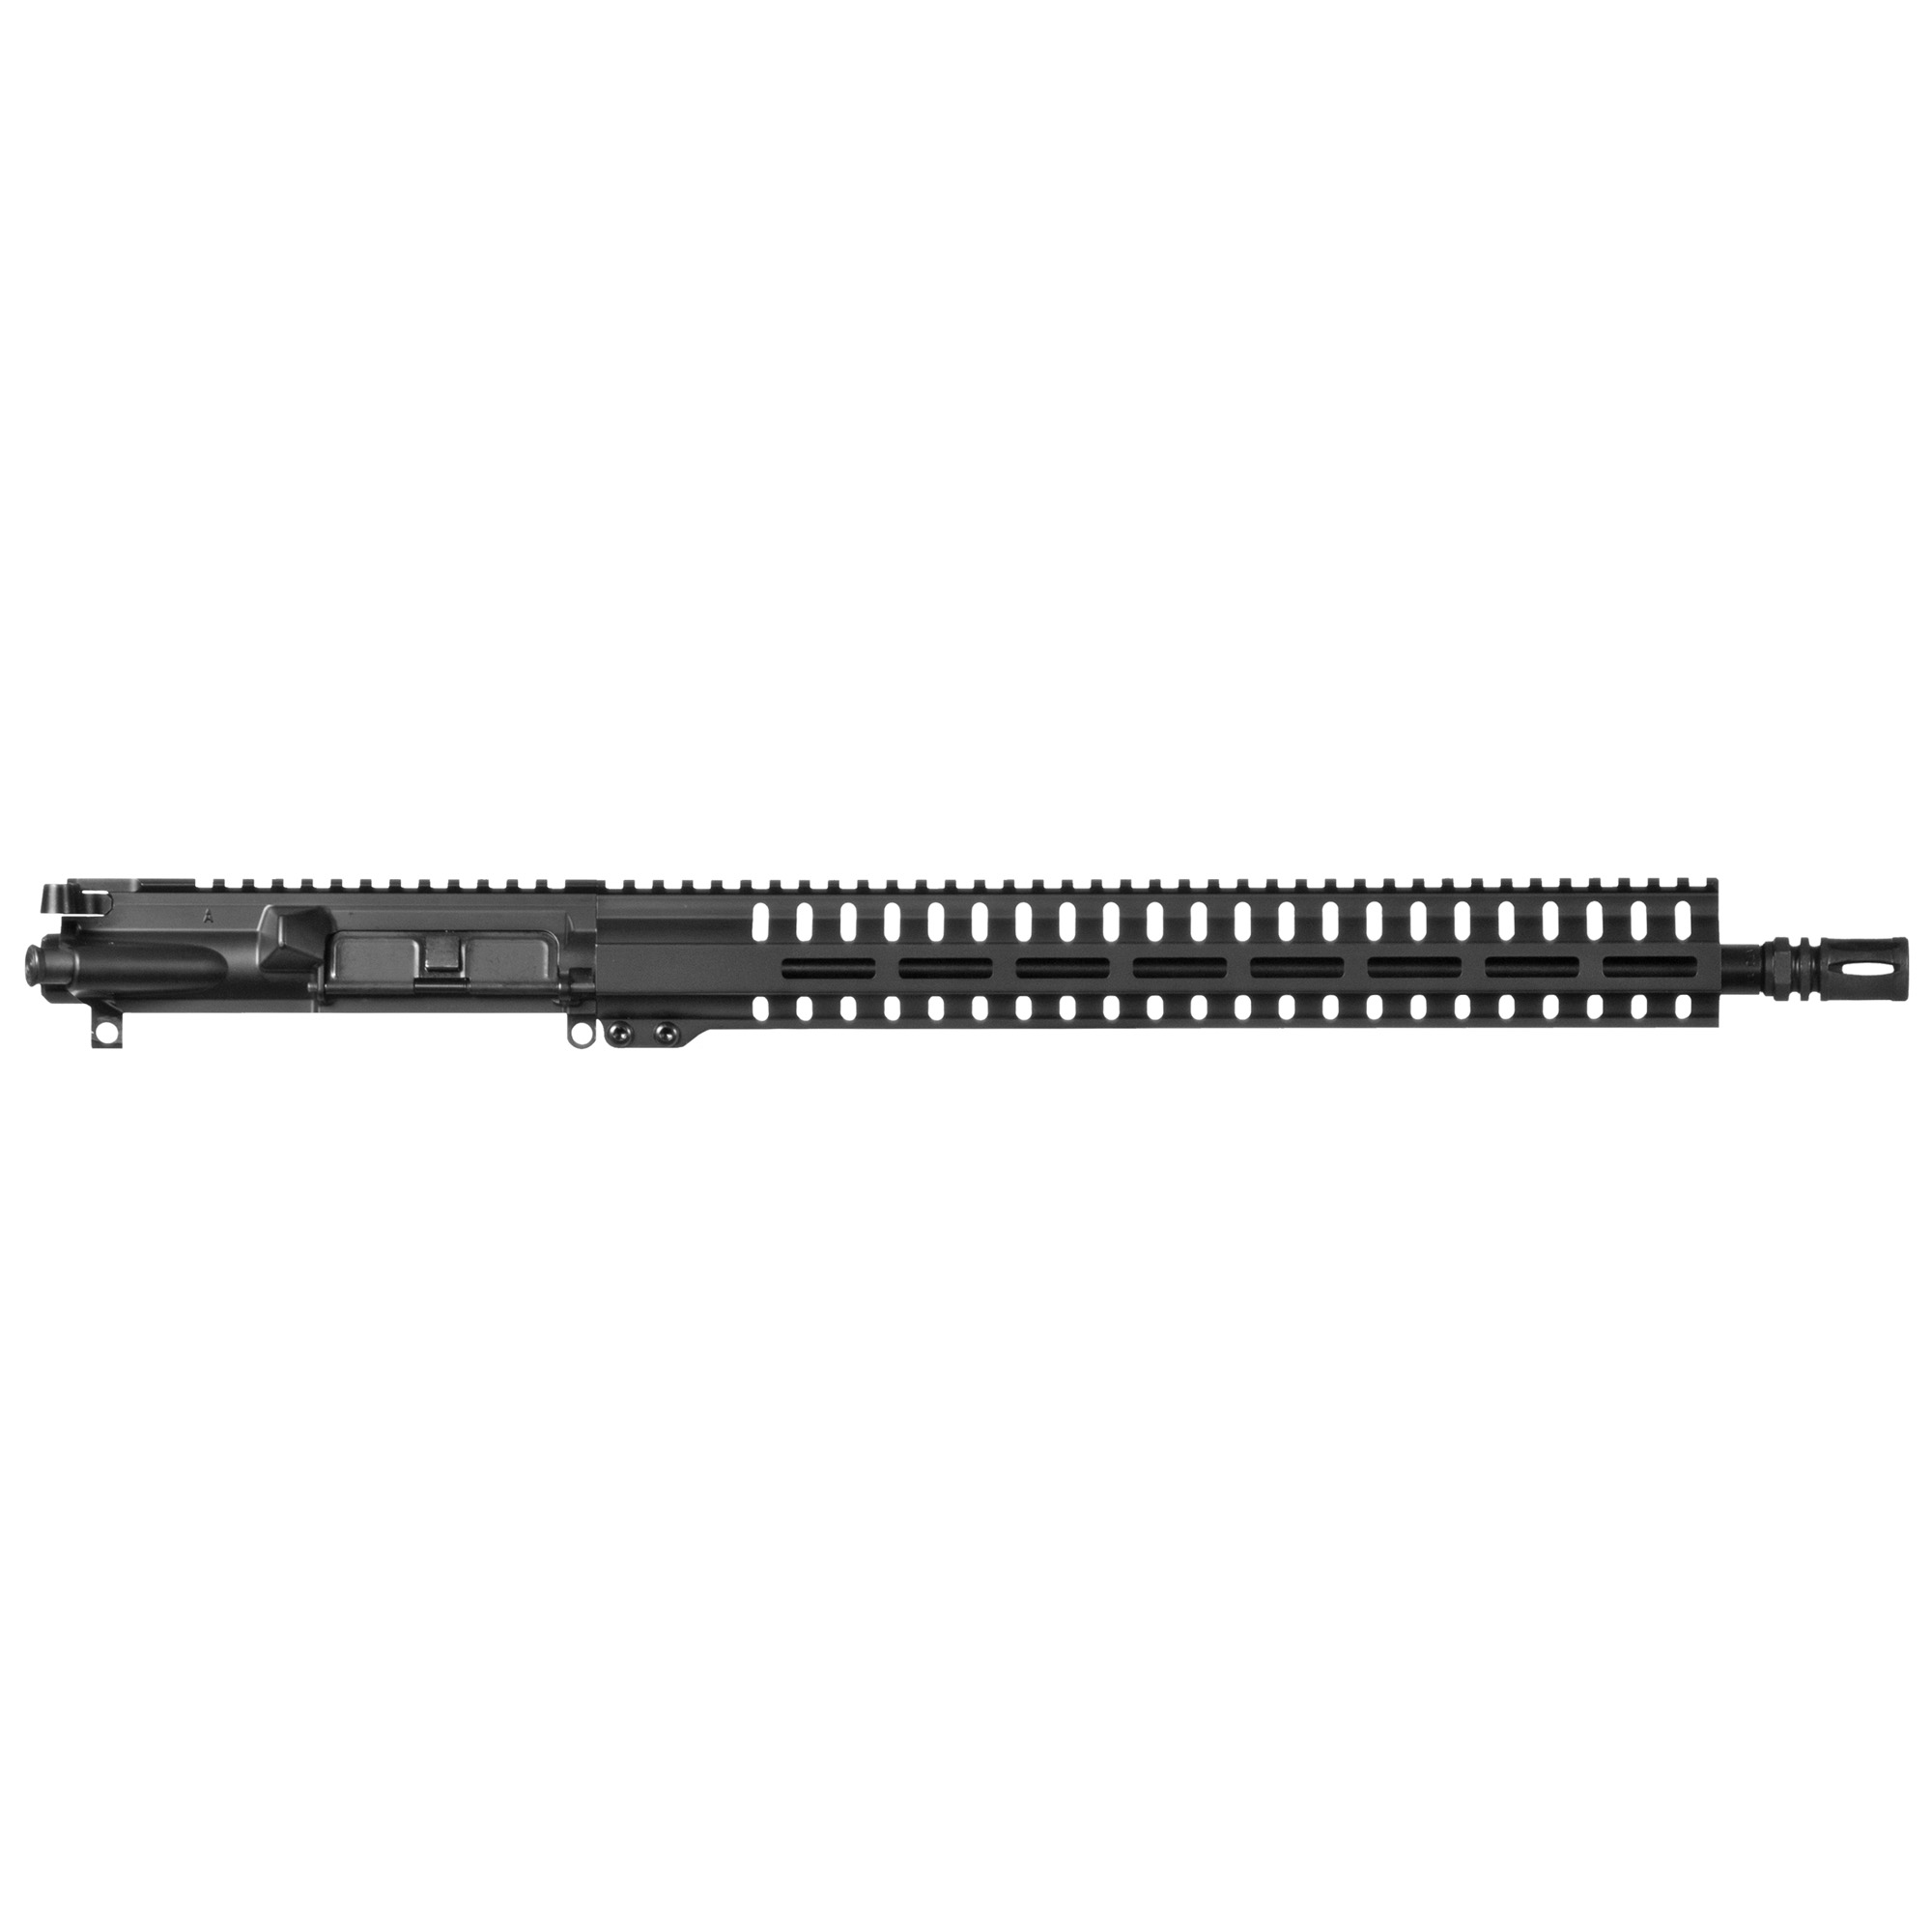 Cmmg Uppr Resolute 100 9mm 16.1